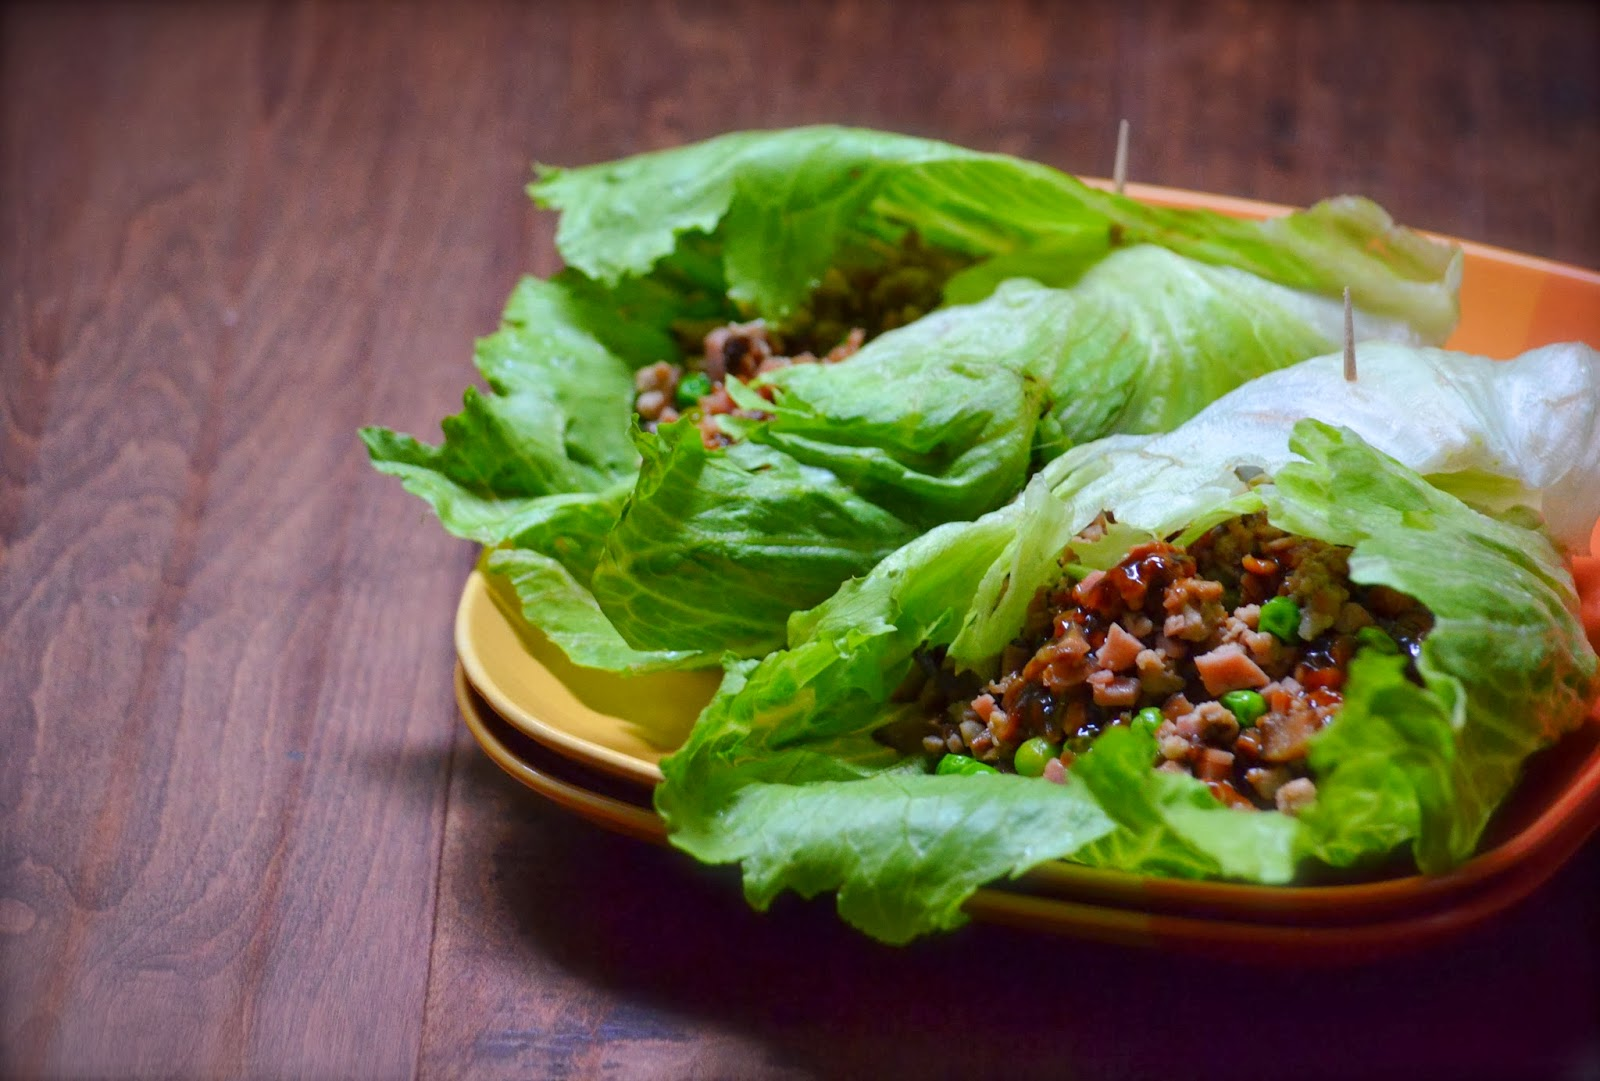 lettuce wrap pork peas spam hoisin PF chang